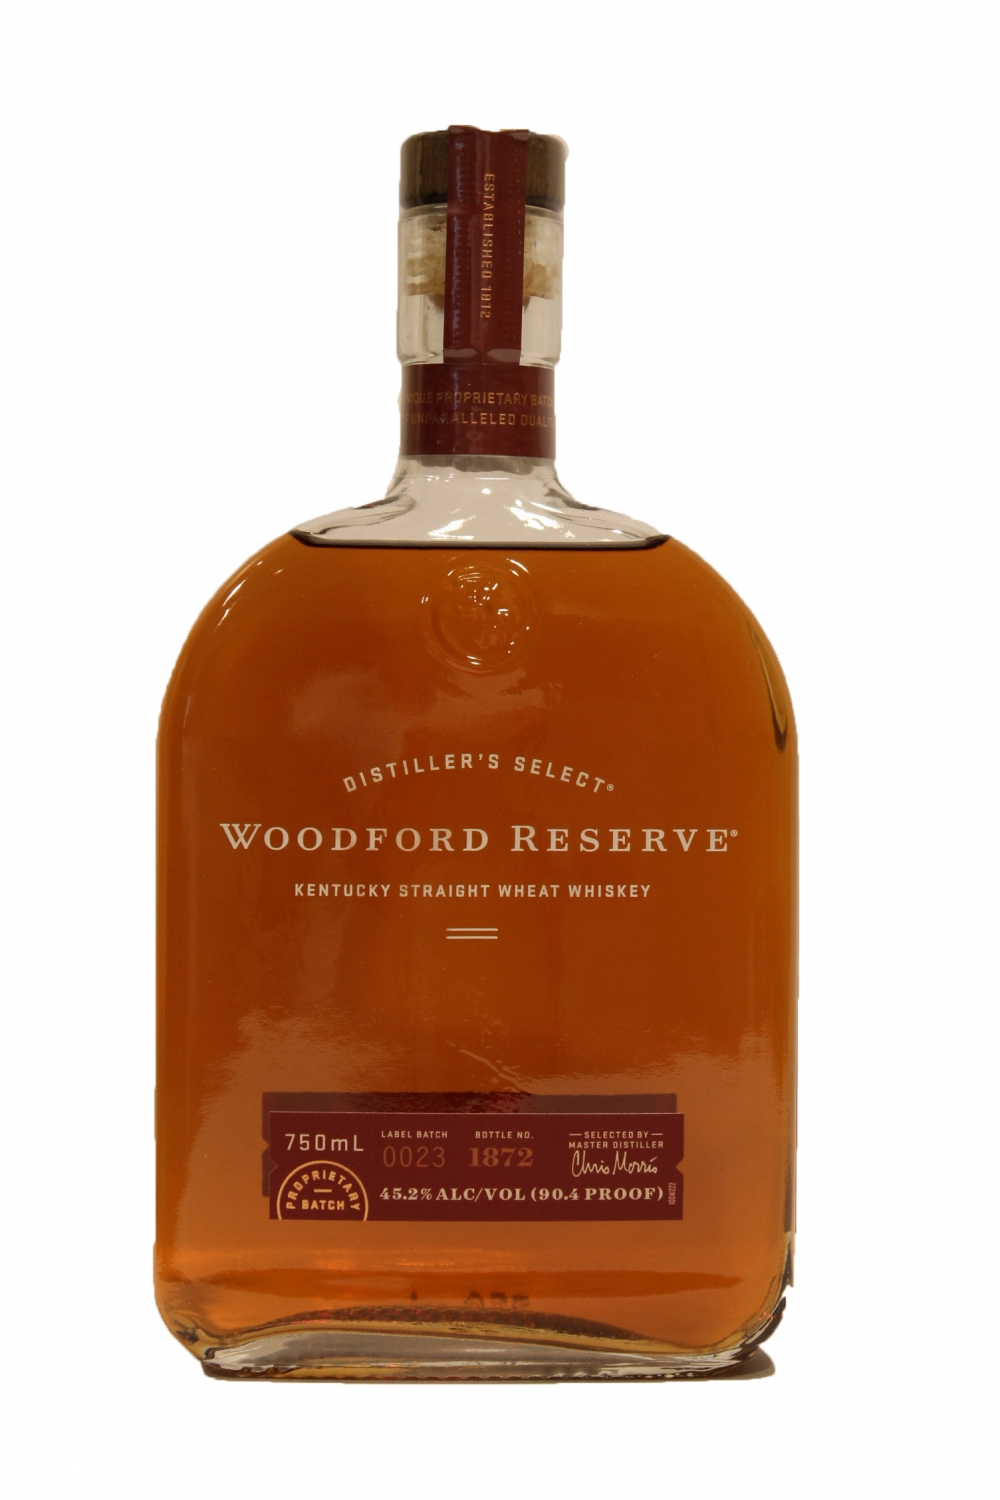 This is a picture of Candid Woodford Reserve Personalized Label Program